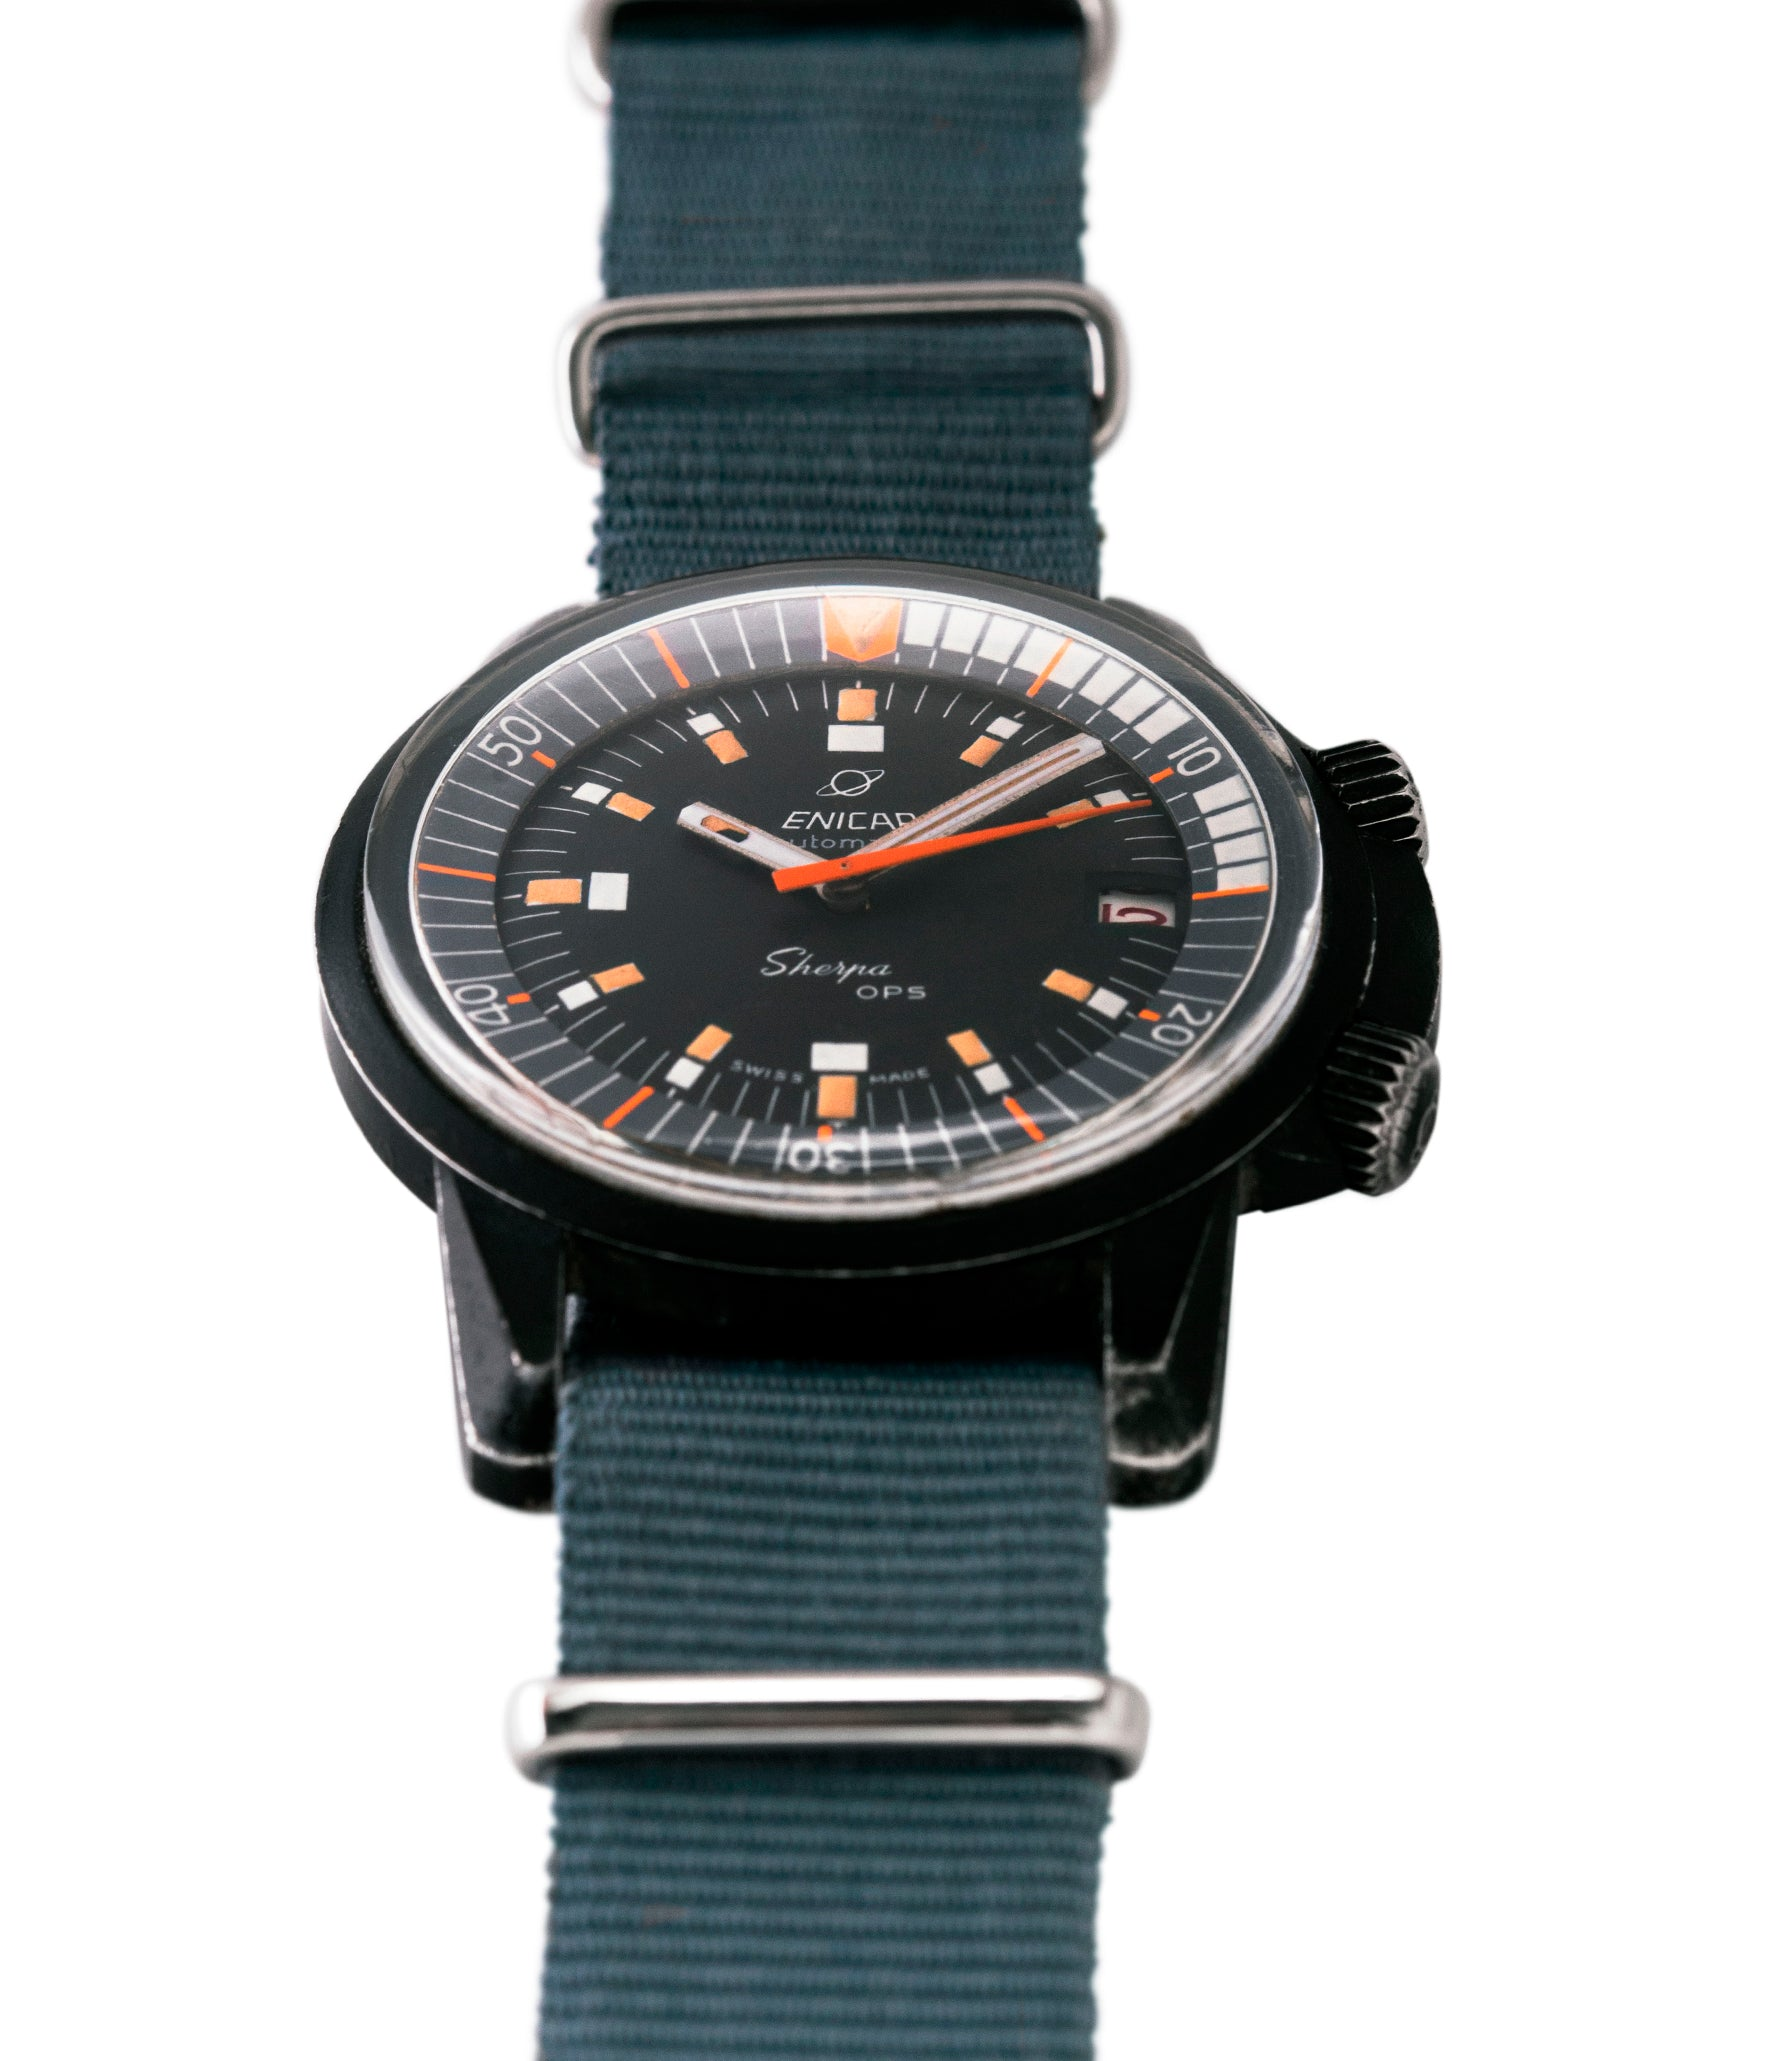 buying vintage Enicar Sherpa OPS 600 Mark 2 Ref. 144/35/03A diver watch for sale online at A Collected Man London UK specialist of rare vintage watches